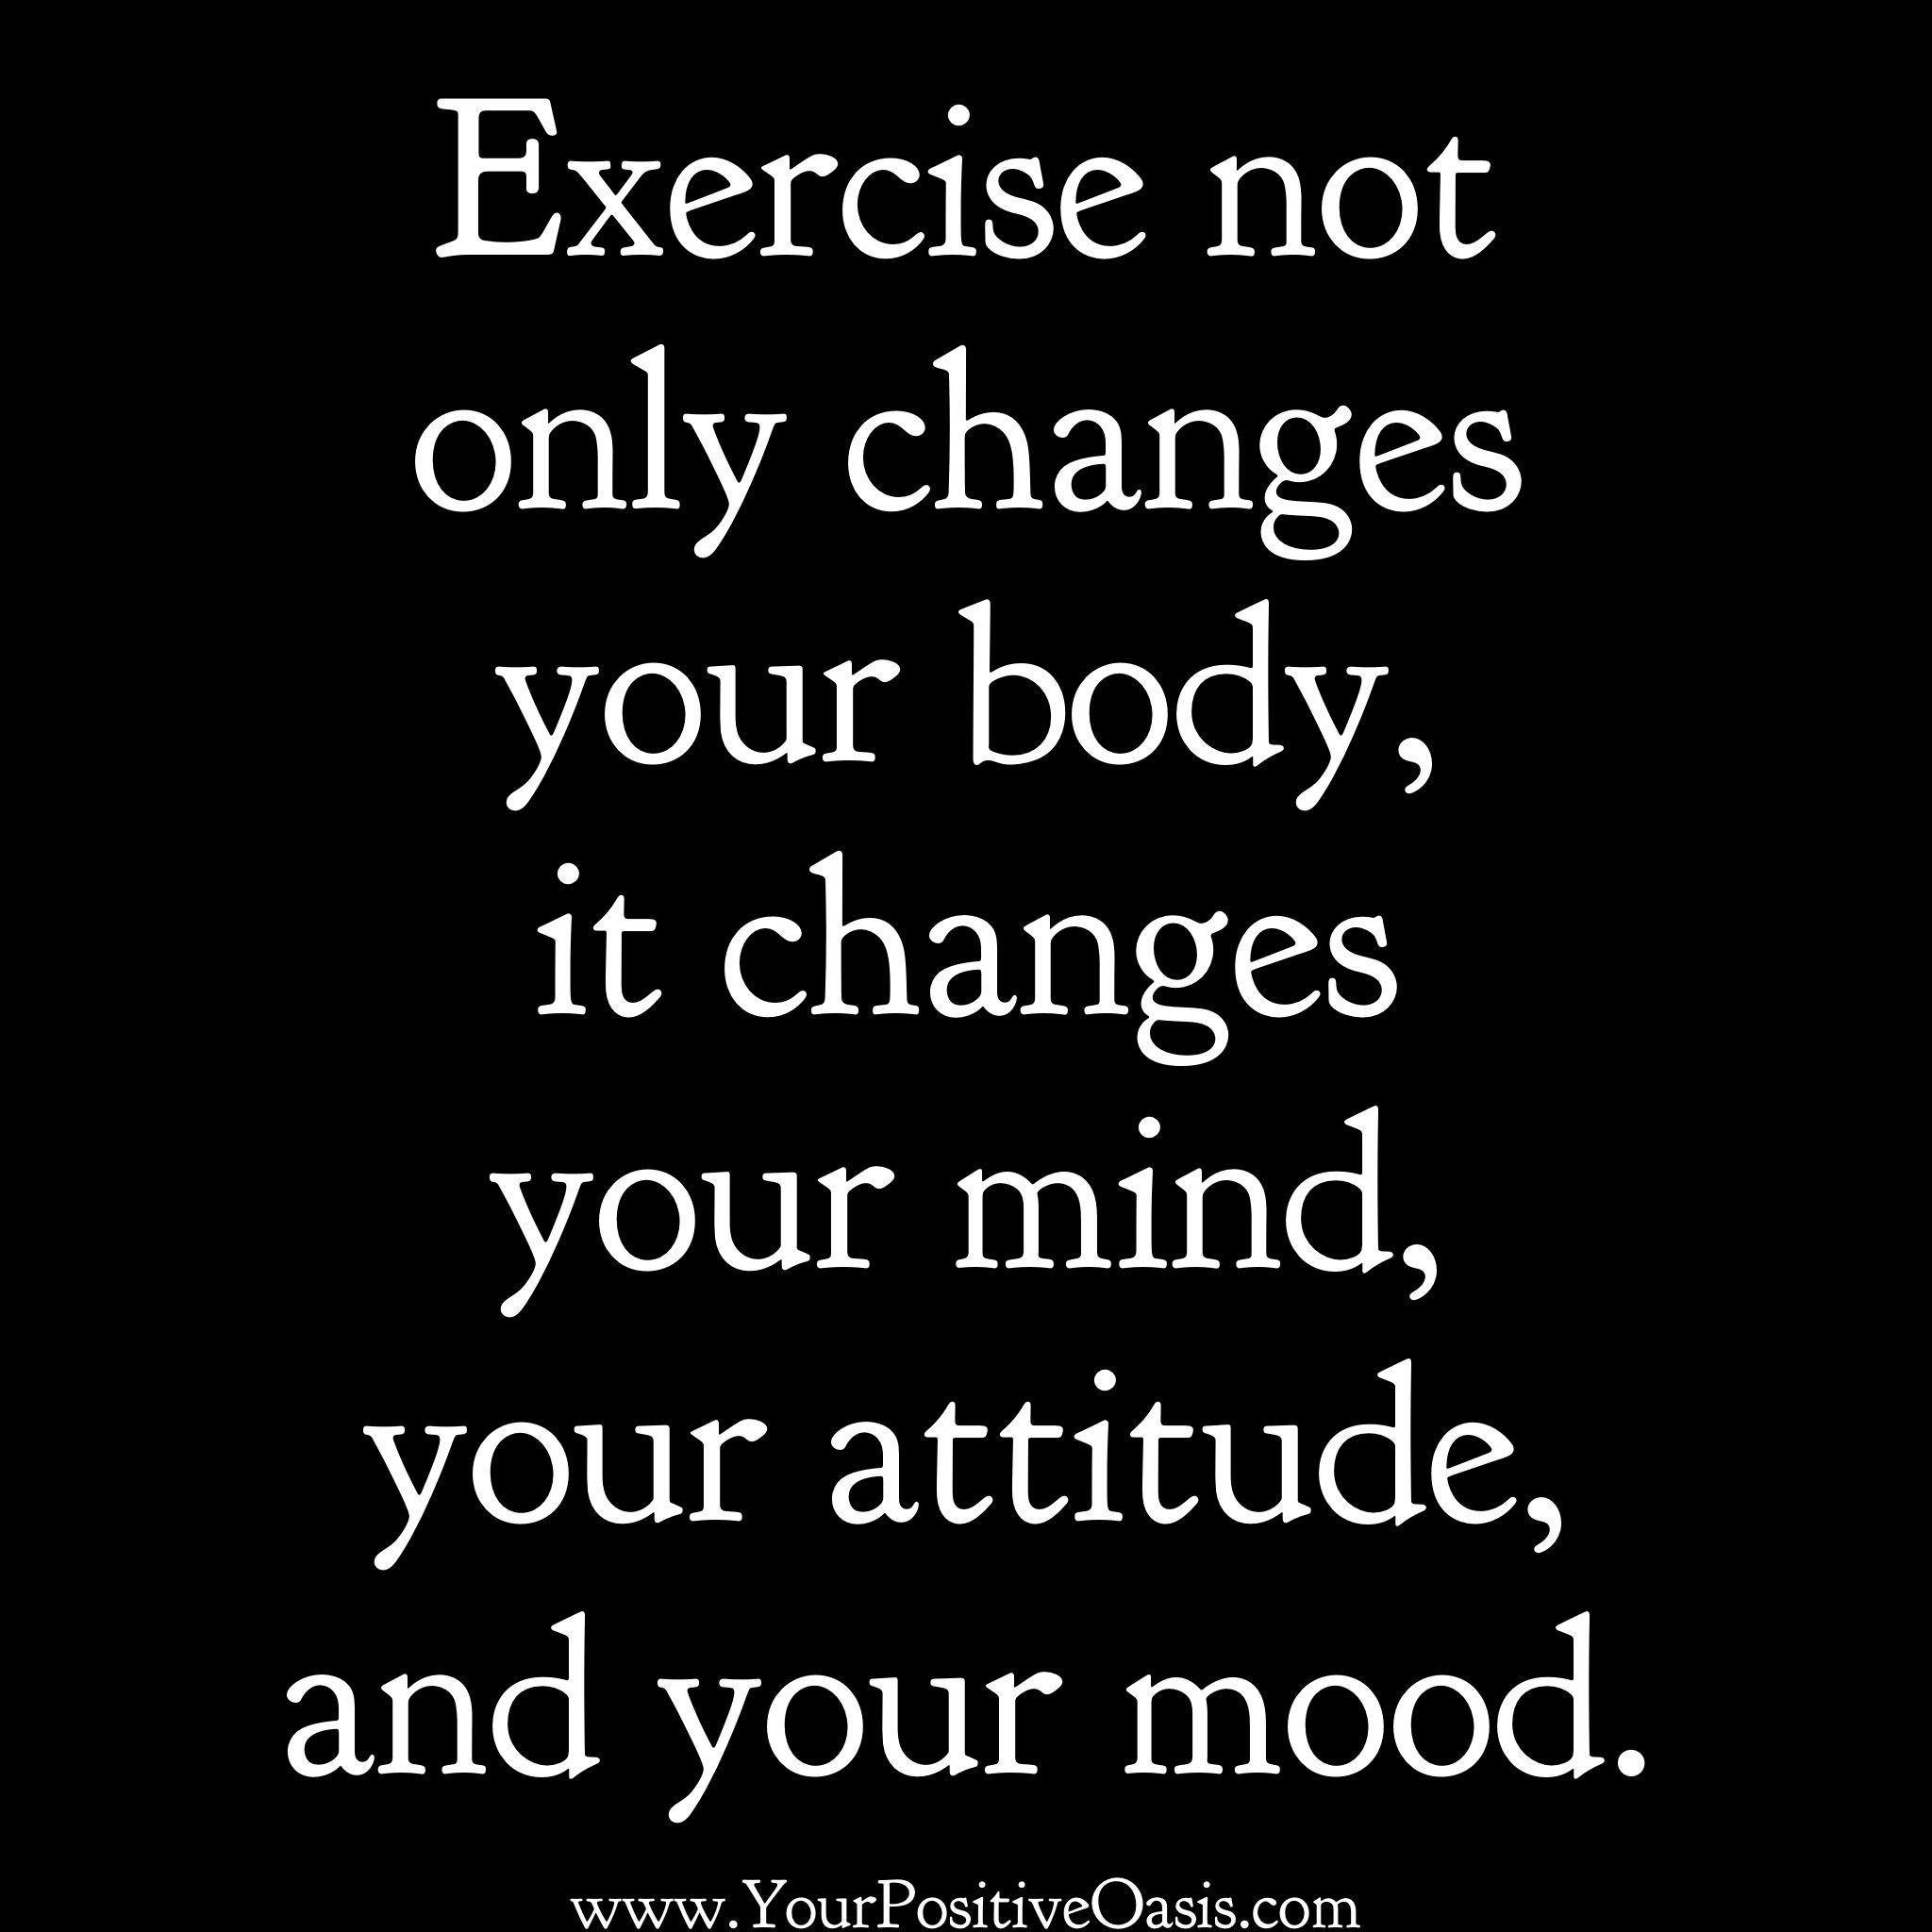 Quotes Archives | Fitness inspiration quotes, Life quotes, Positive quotes